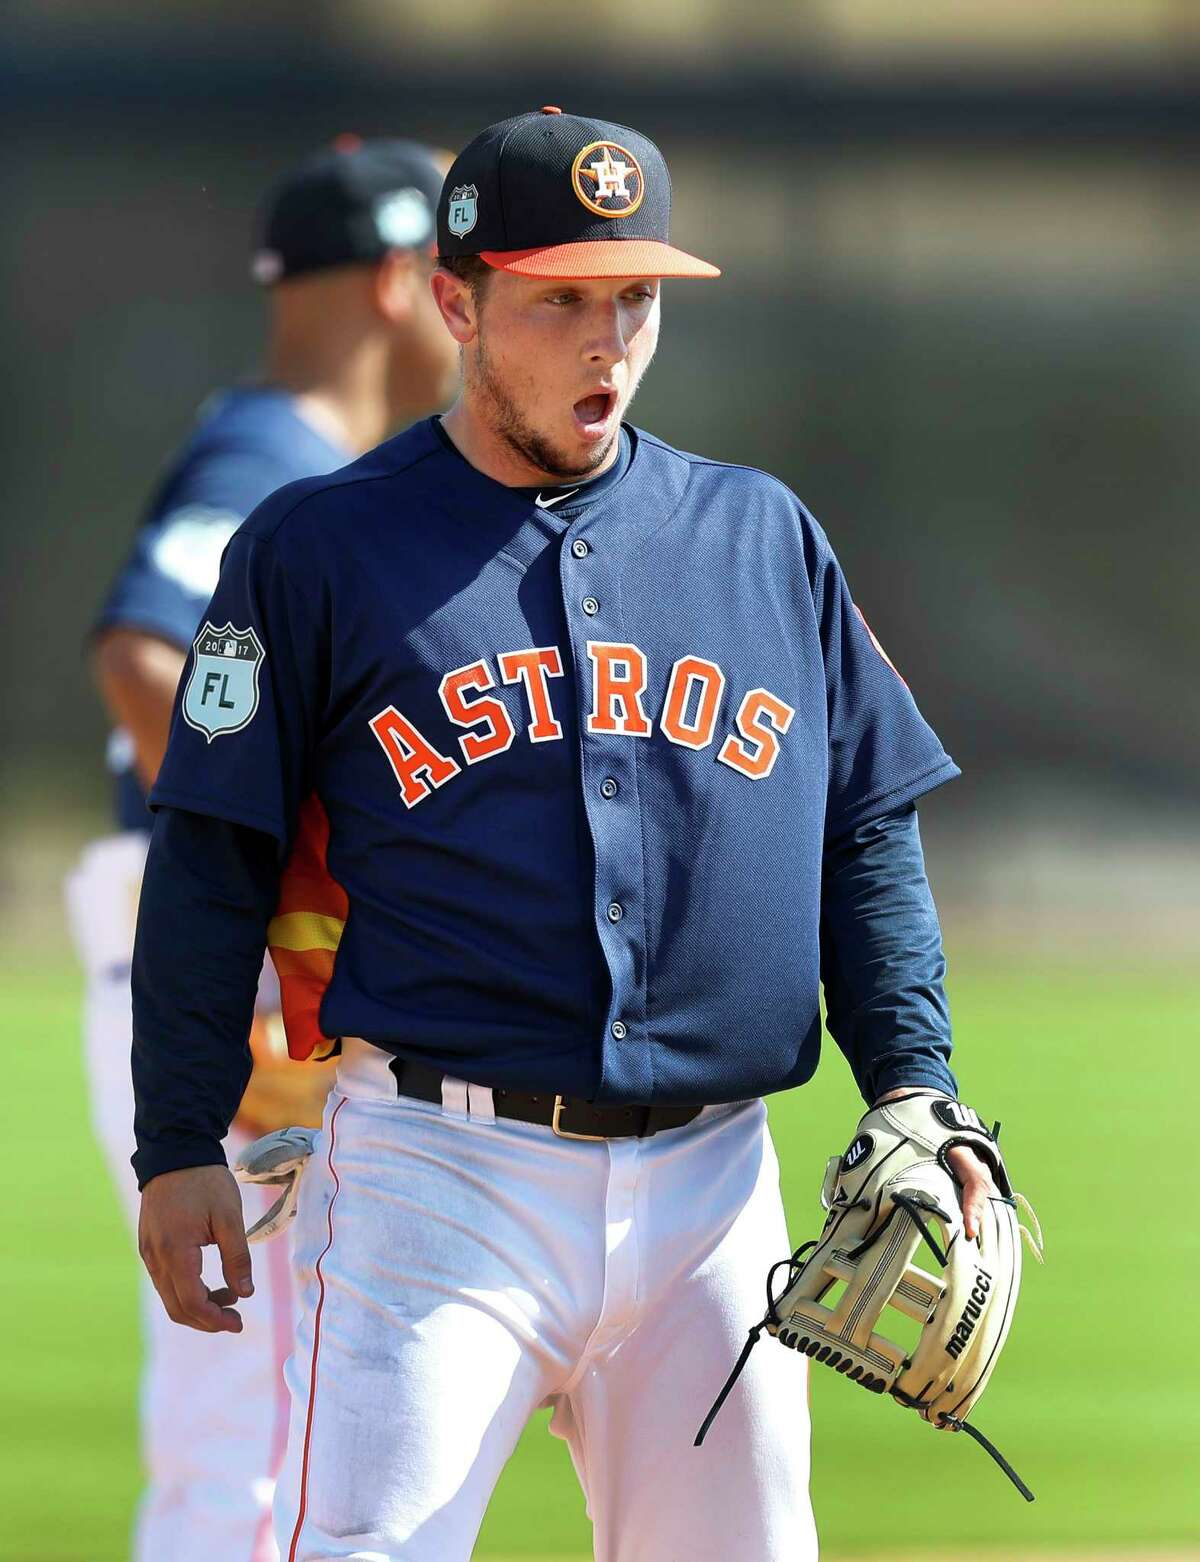 Houston Astros third baseman Alex Bregman (2) reacts after getting popped in the face during infield defensive work during spring training at The Ballpark of the Palm Beaches, in West Palm Beach, Florida, Monday, February 20, 2017.